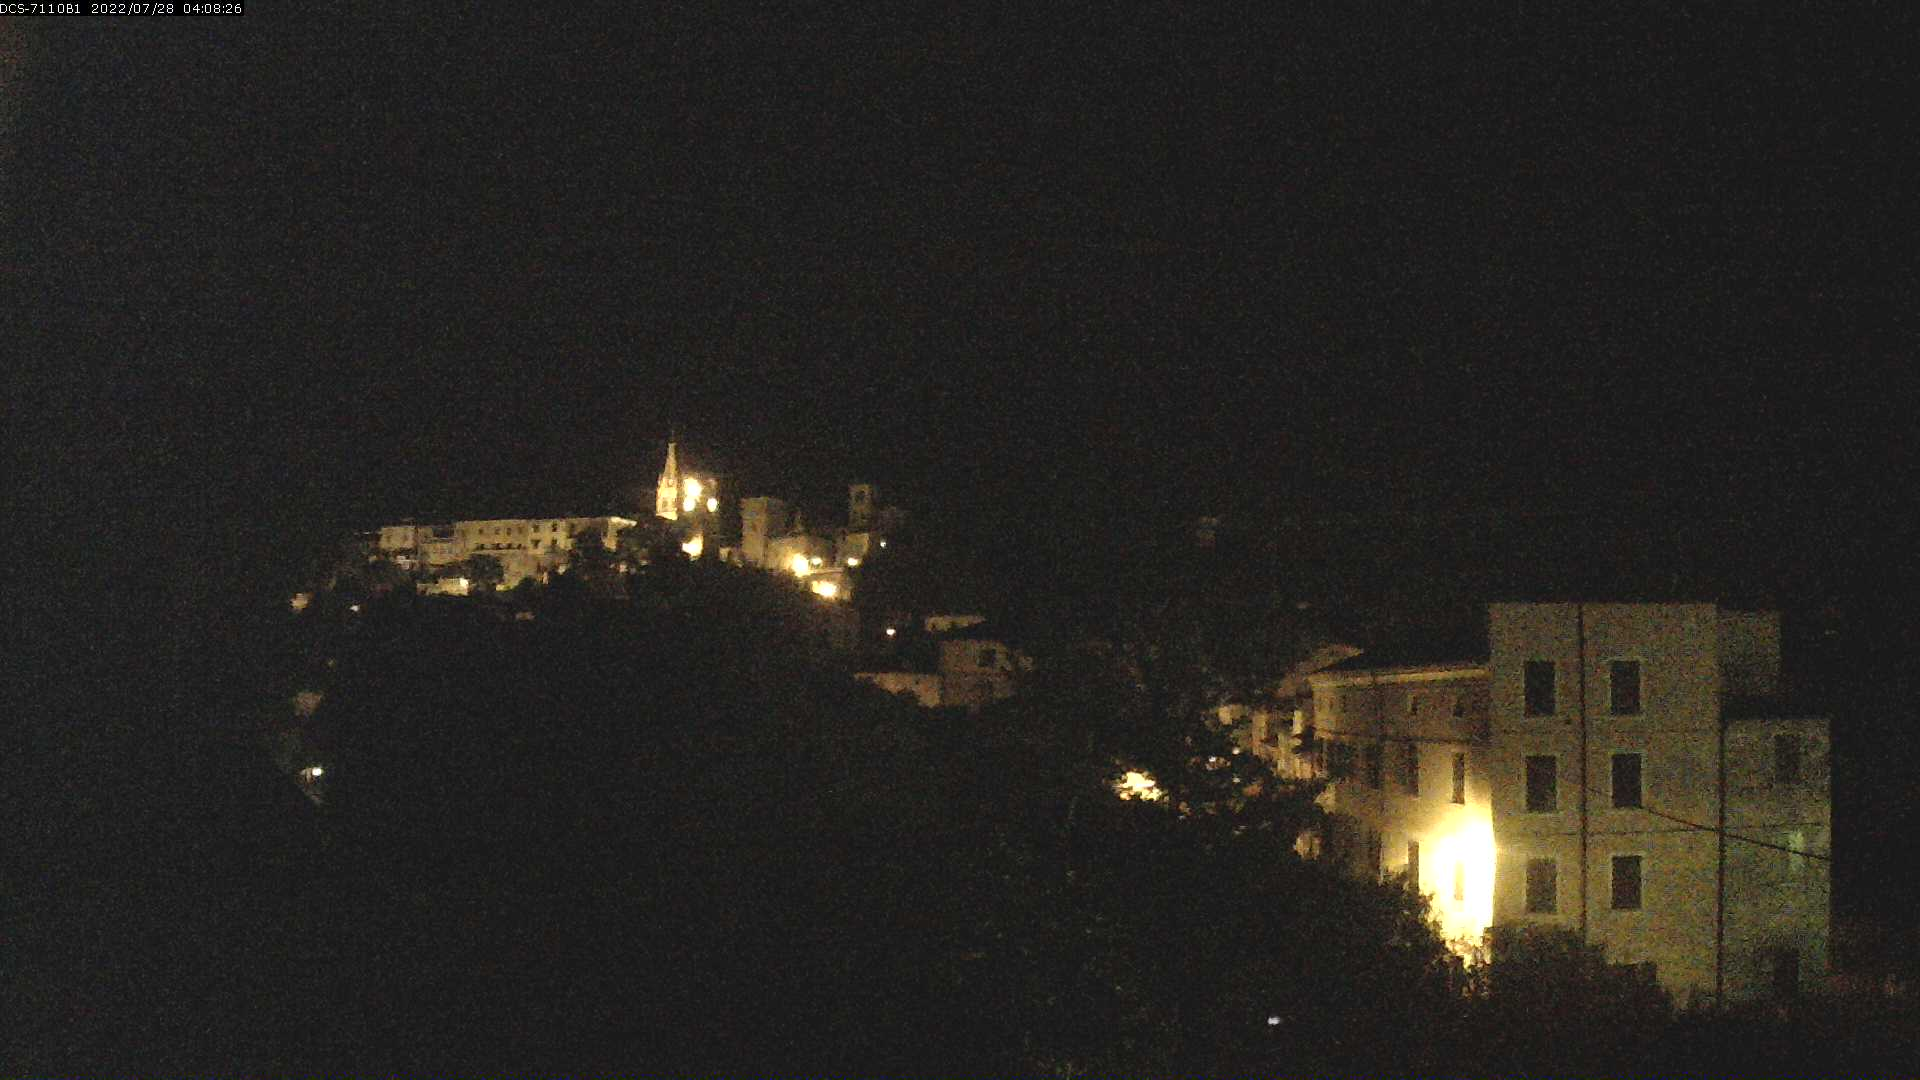 http://www.castelmeteo.it/webcam/cam0001.jpg